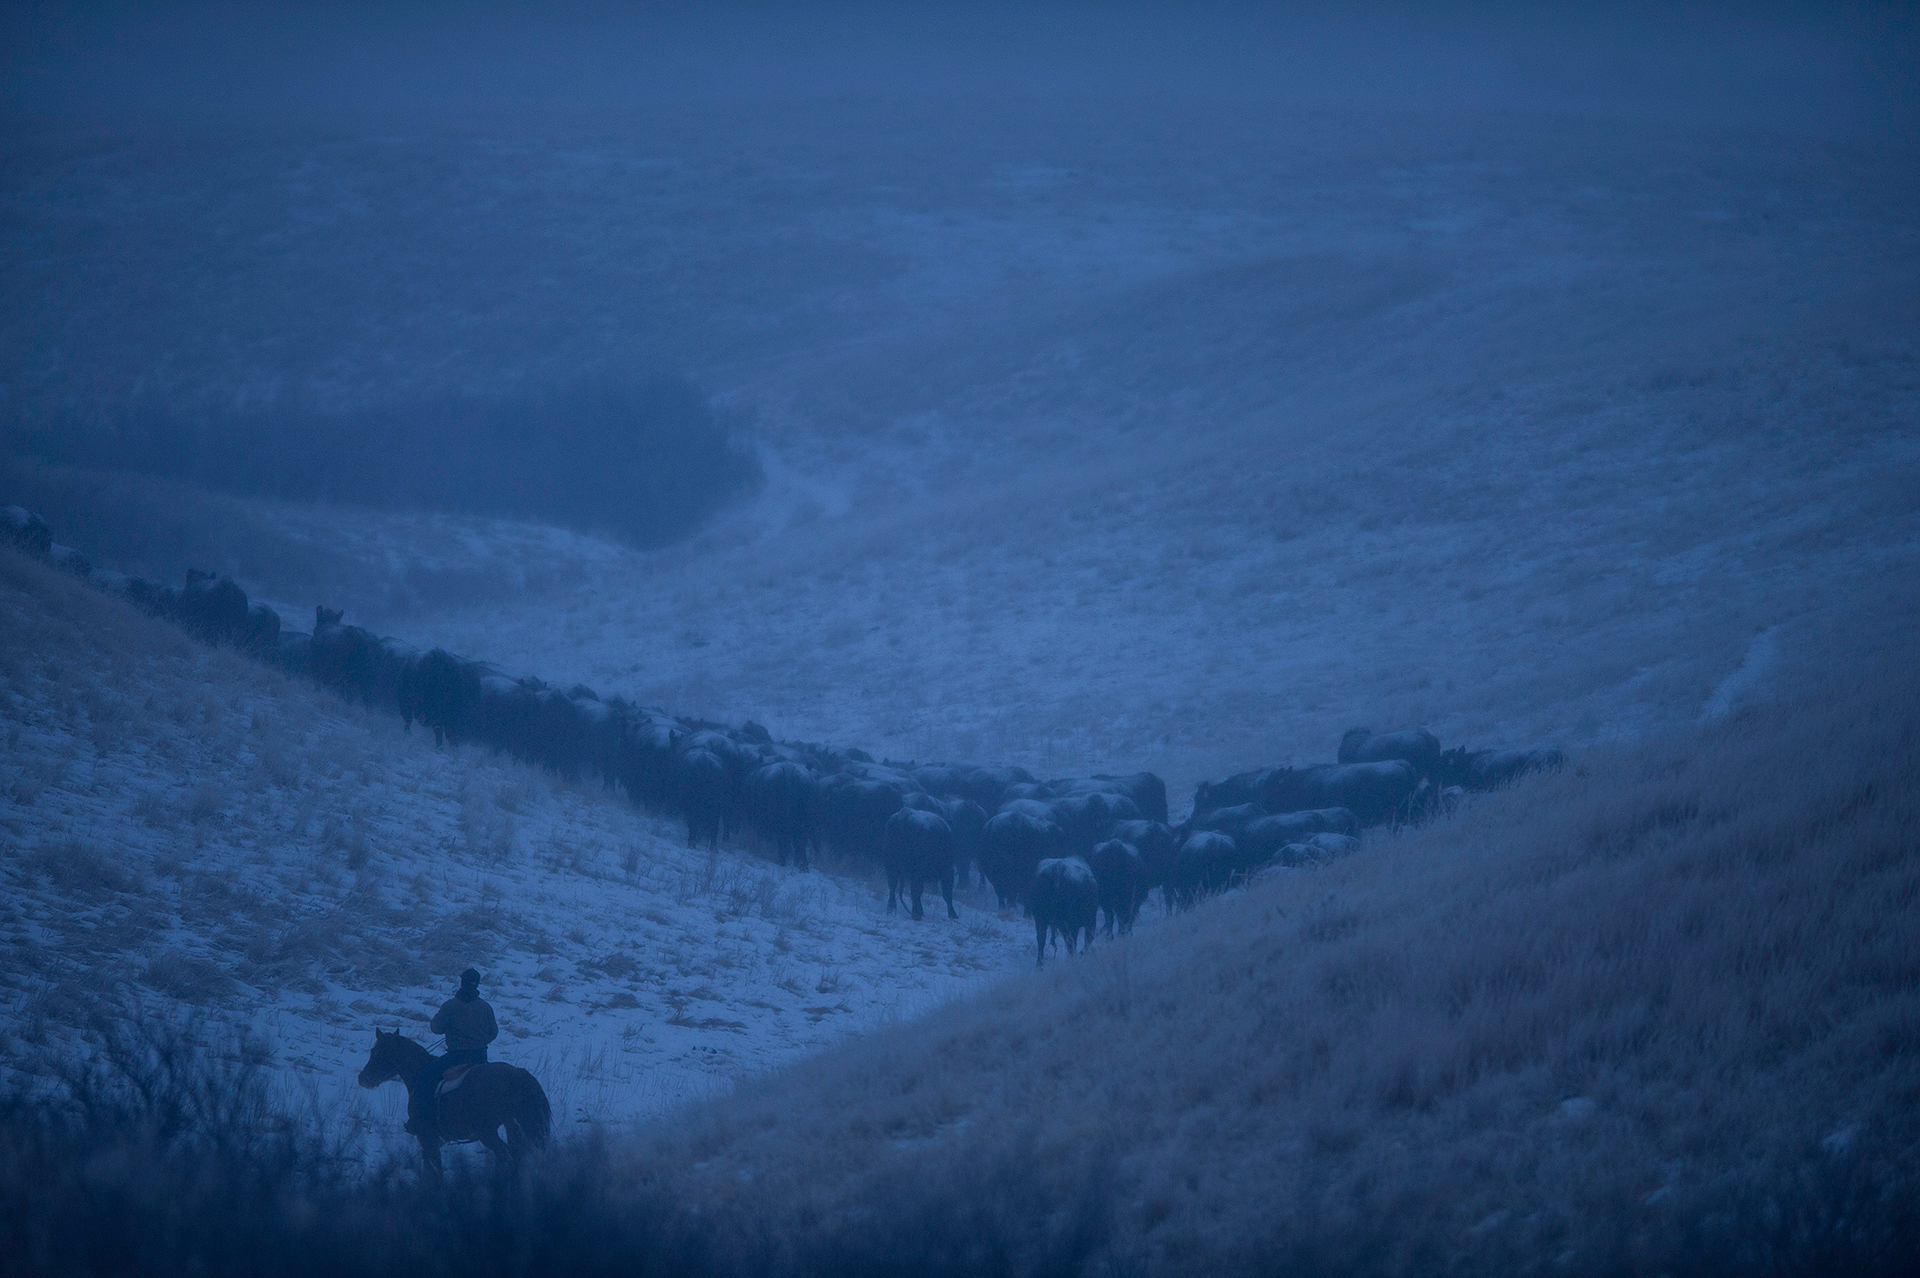 January might seem like an odd time for a cattle drive, but Darrin Boss, superintendent of the NARC and Montana State University research professor of beef cattle nutrition says that frequent Chinook winds on the property clear the 3,960 acres of grazing land of snow and ice on the ranch and provide ample forage into January.